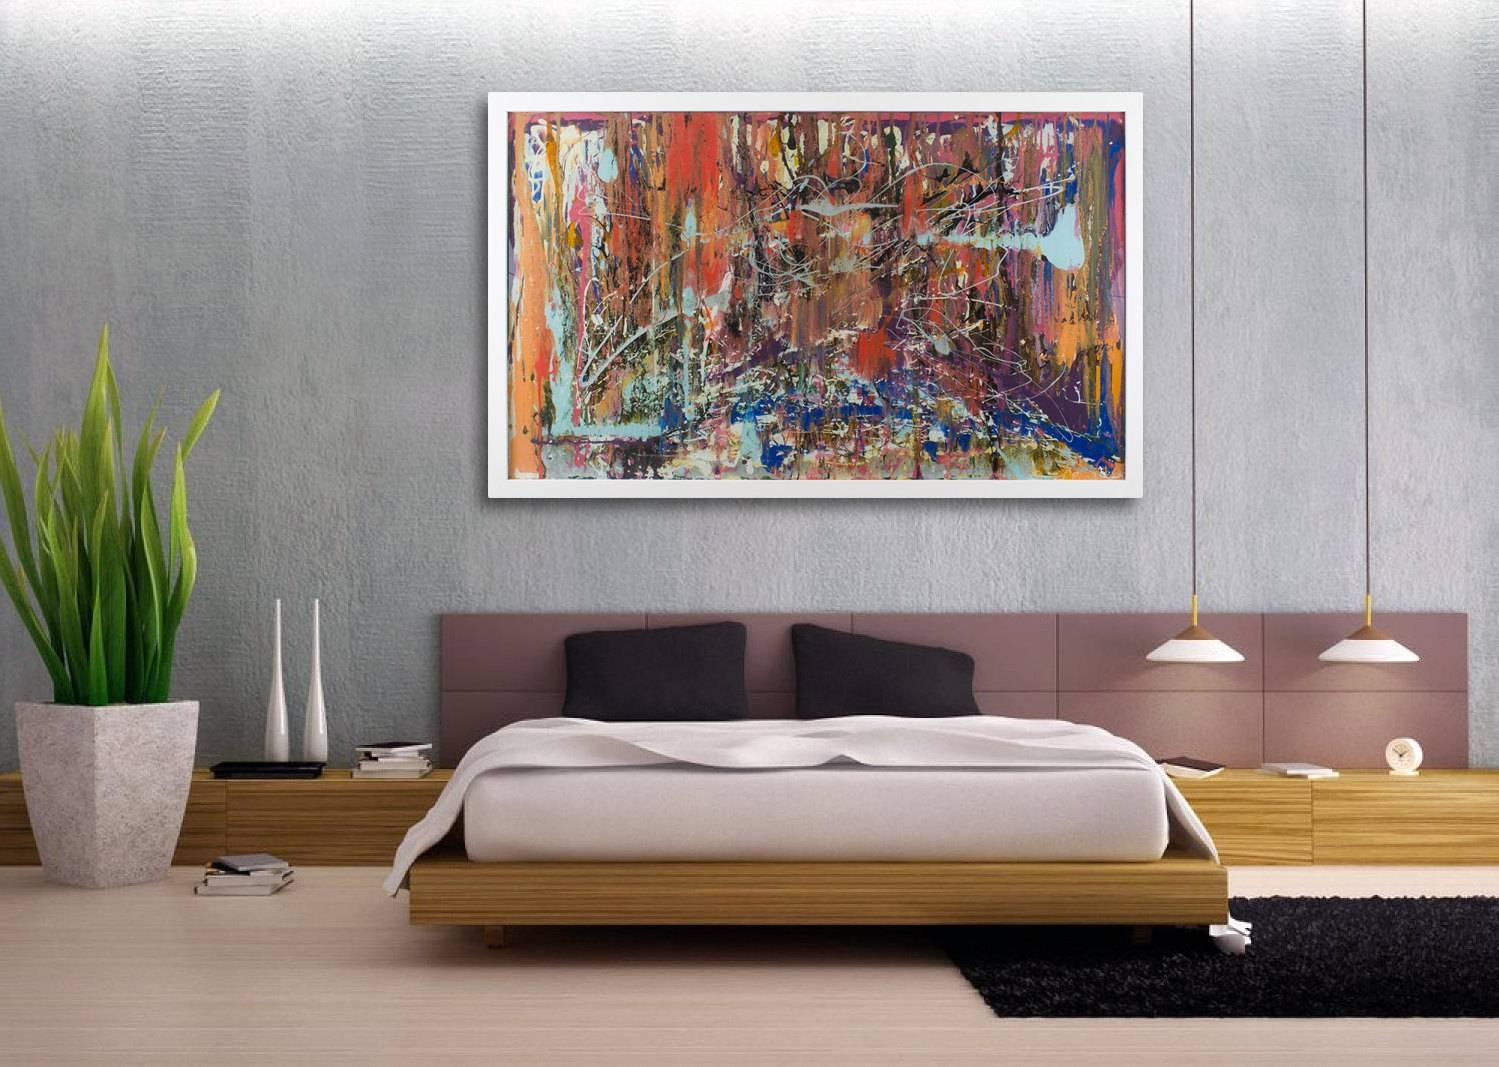 Extra Large Wall Art | Roselawnlutheran With Regard To Most Up To Date Oversized Modern Wall Art (View 7 of 20)